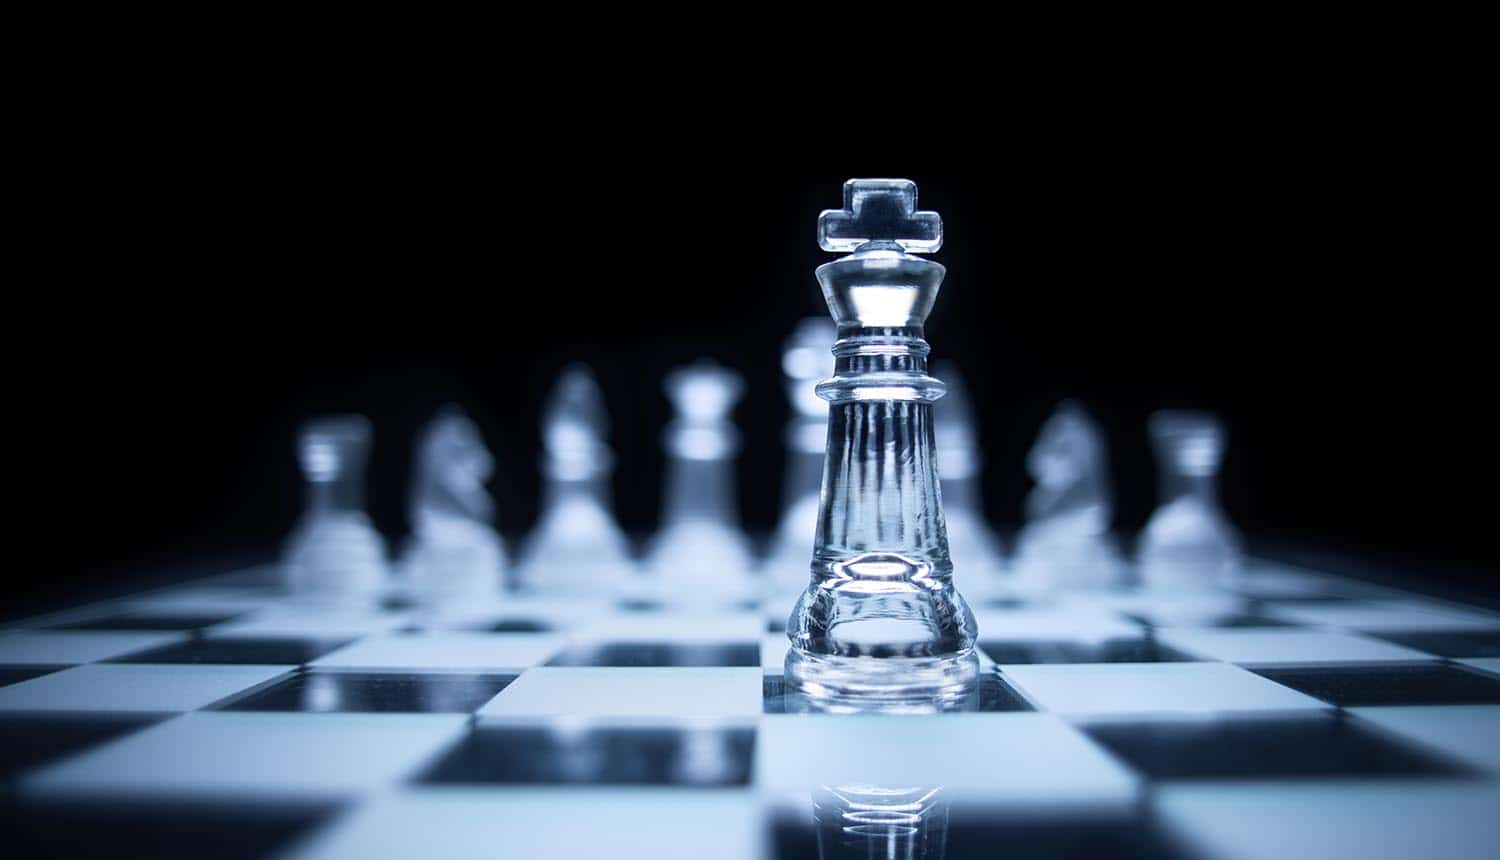 Image of chess board with the king chess piece leading representing the data protection officer (DPO) in Philippines